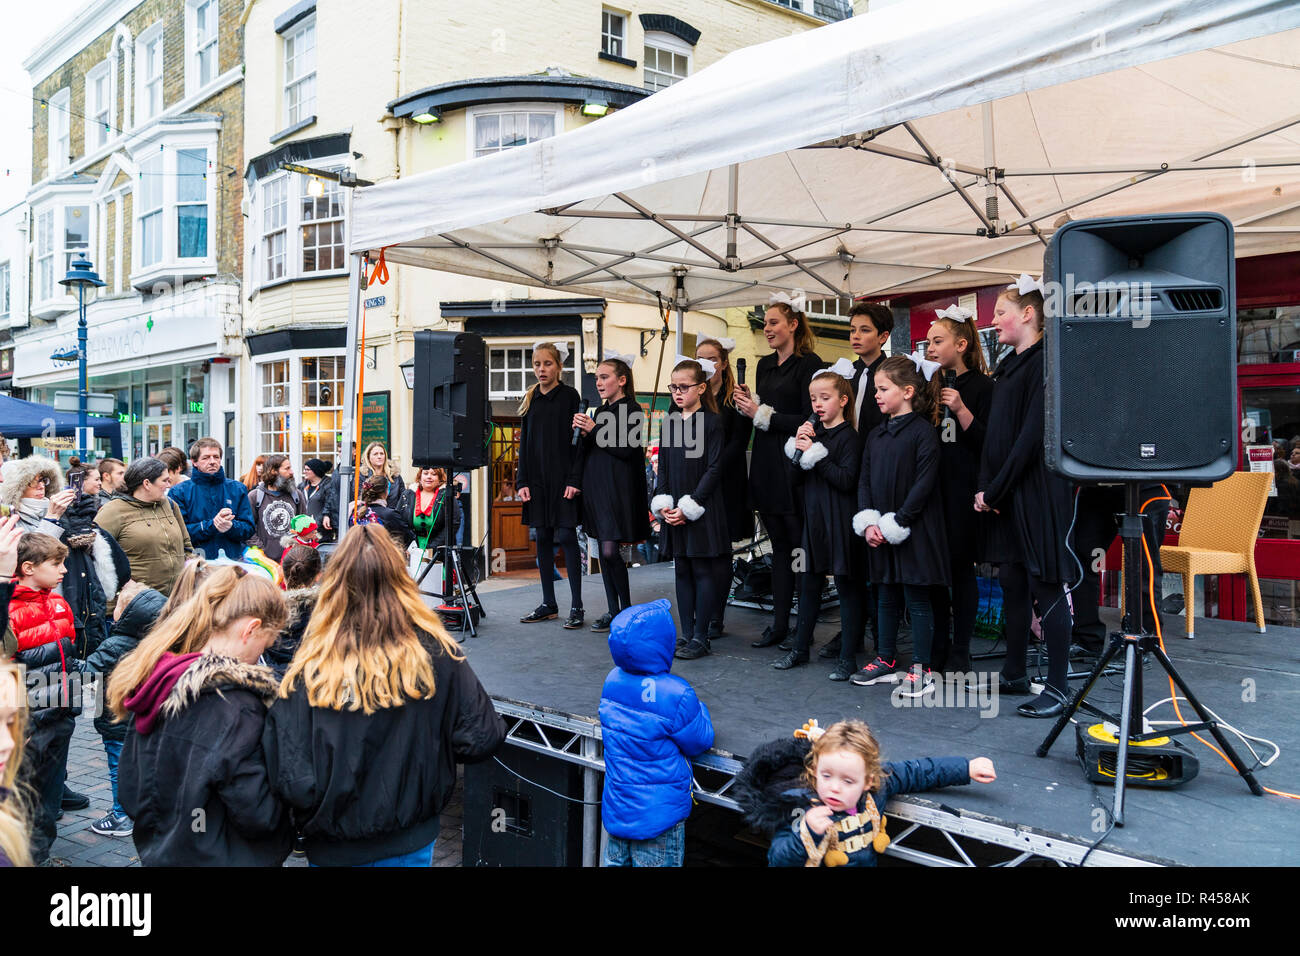 Children, girls, age 8-14 years, from the Kent Show Choir singing on outdoor stage in front of small audience during Christmas event at Ramsgate town. Girls dressed in black with white double bows on head. Stock Photo